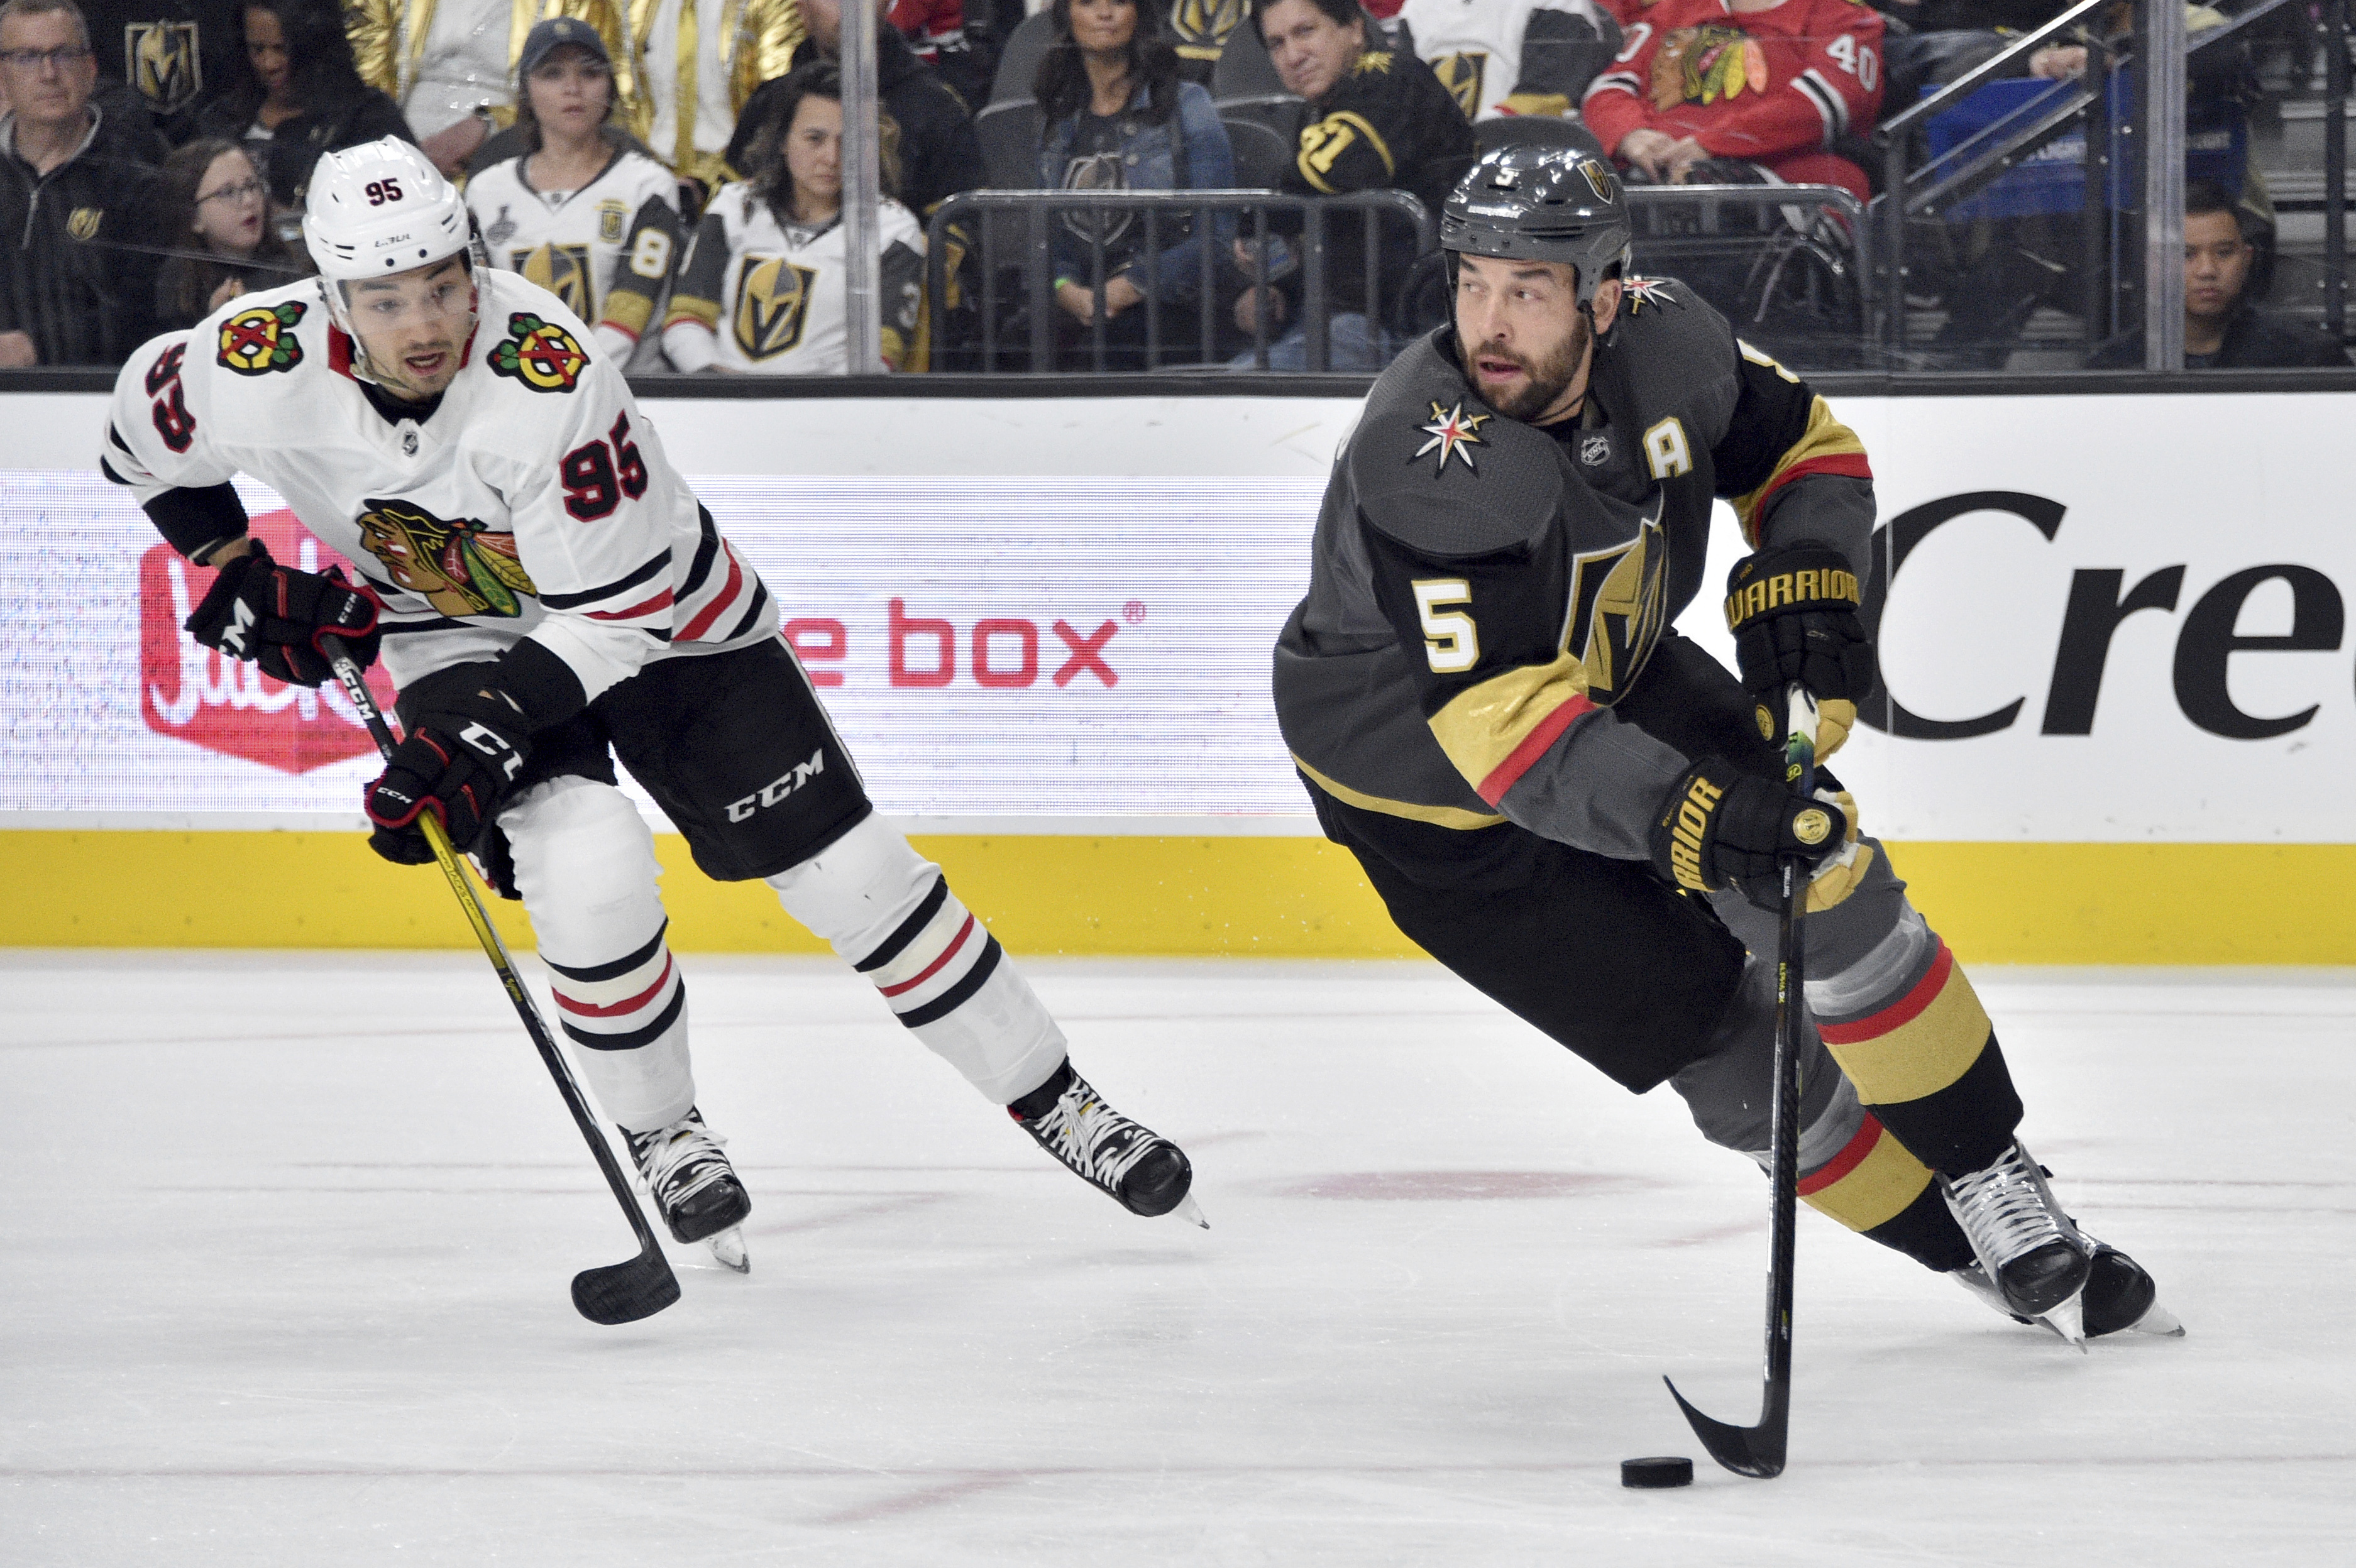 By the time the Blackhawks faced the Golden Knights on Tuesday, Dylan Sikura (left) was a tired man.